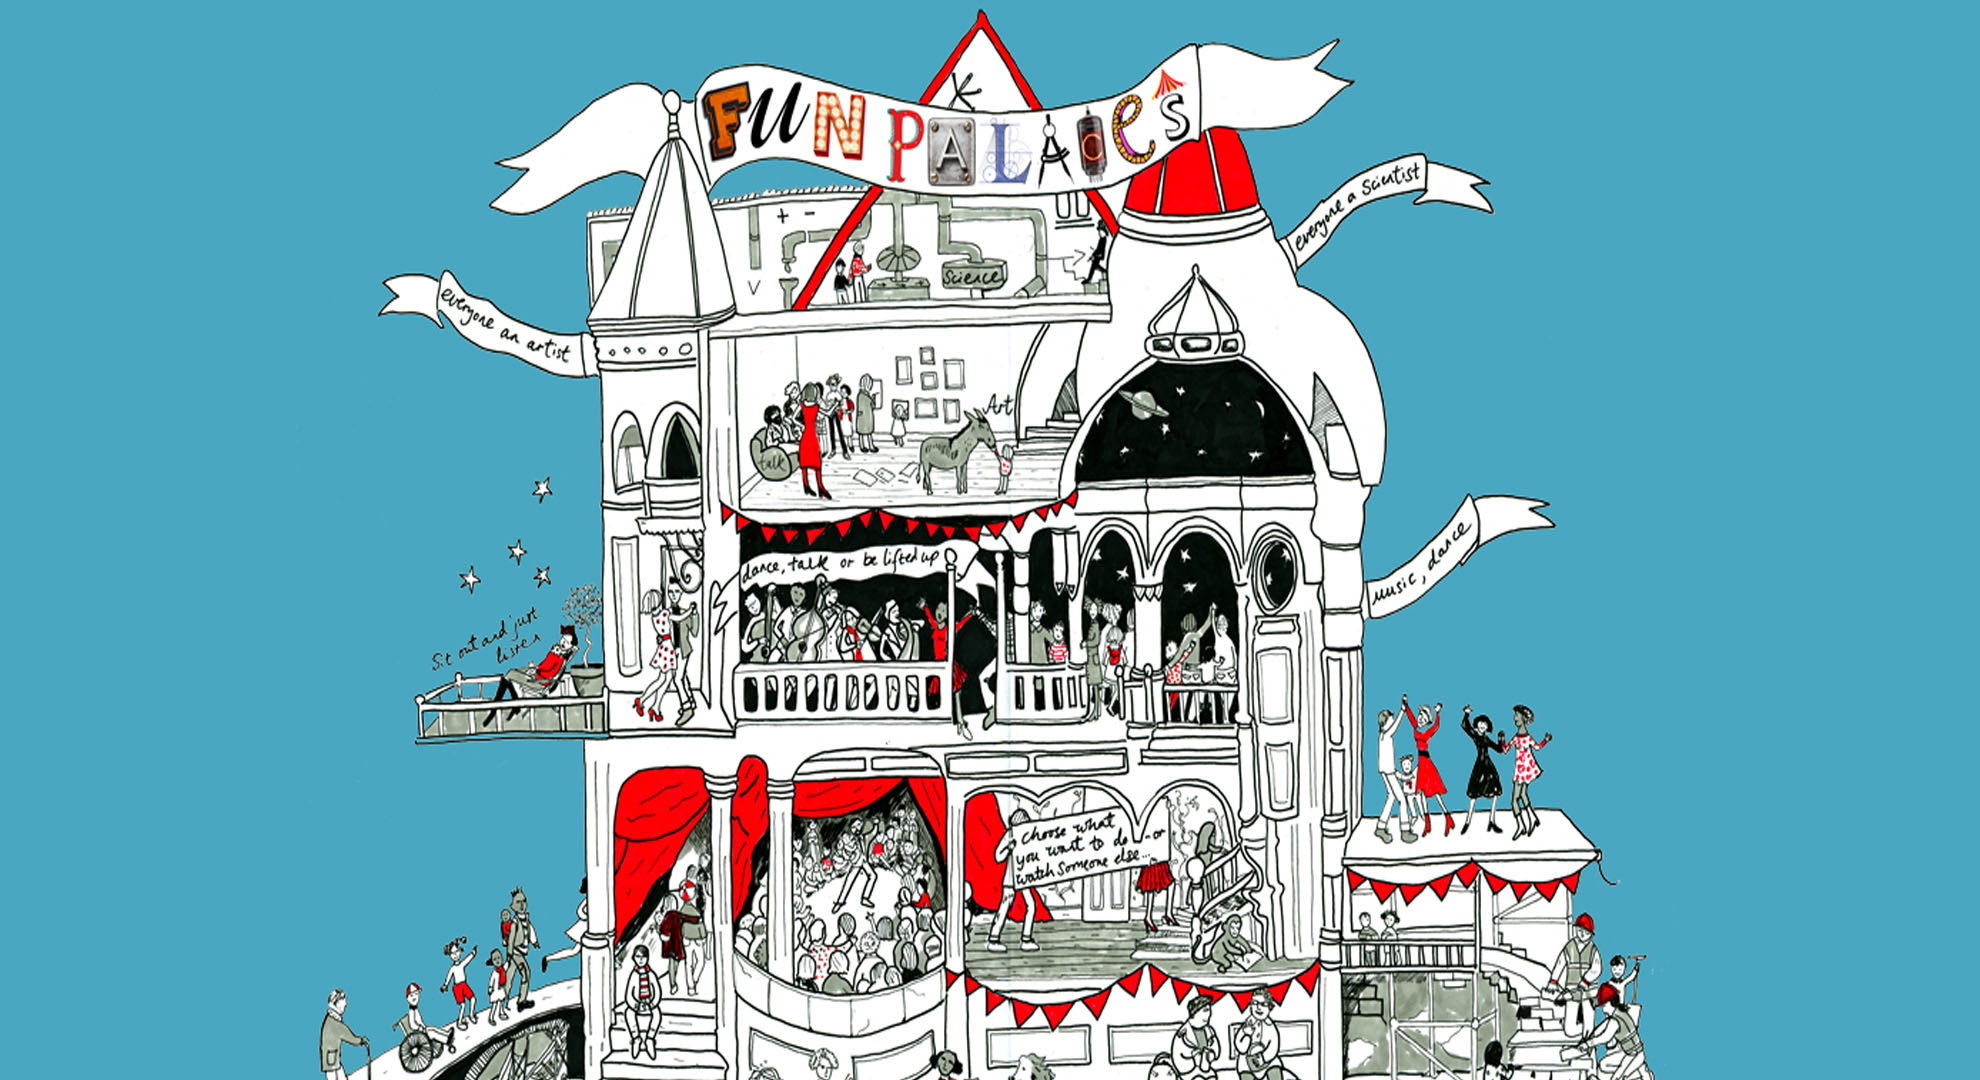 Fun Palaces, a project to promote shared creativity